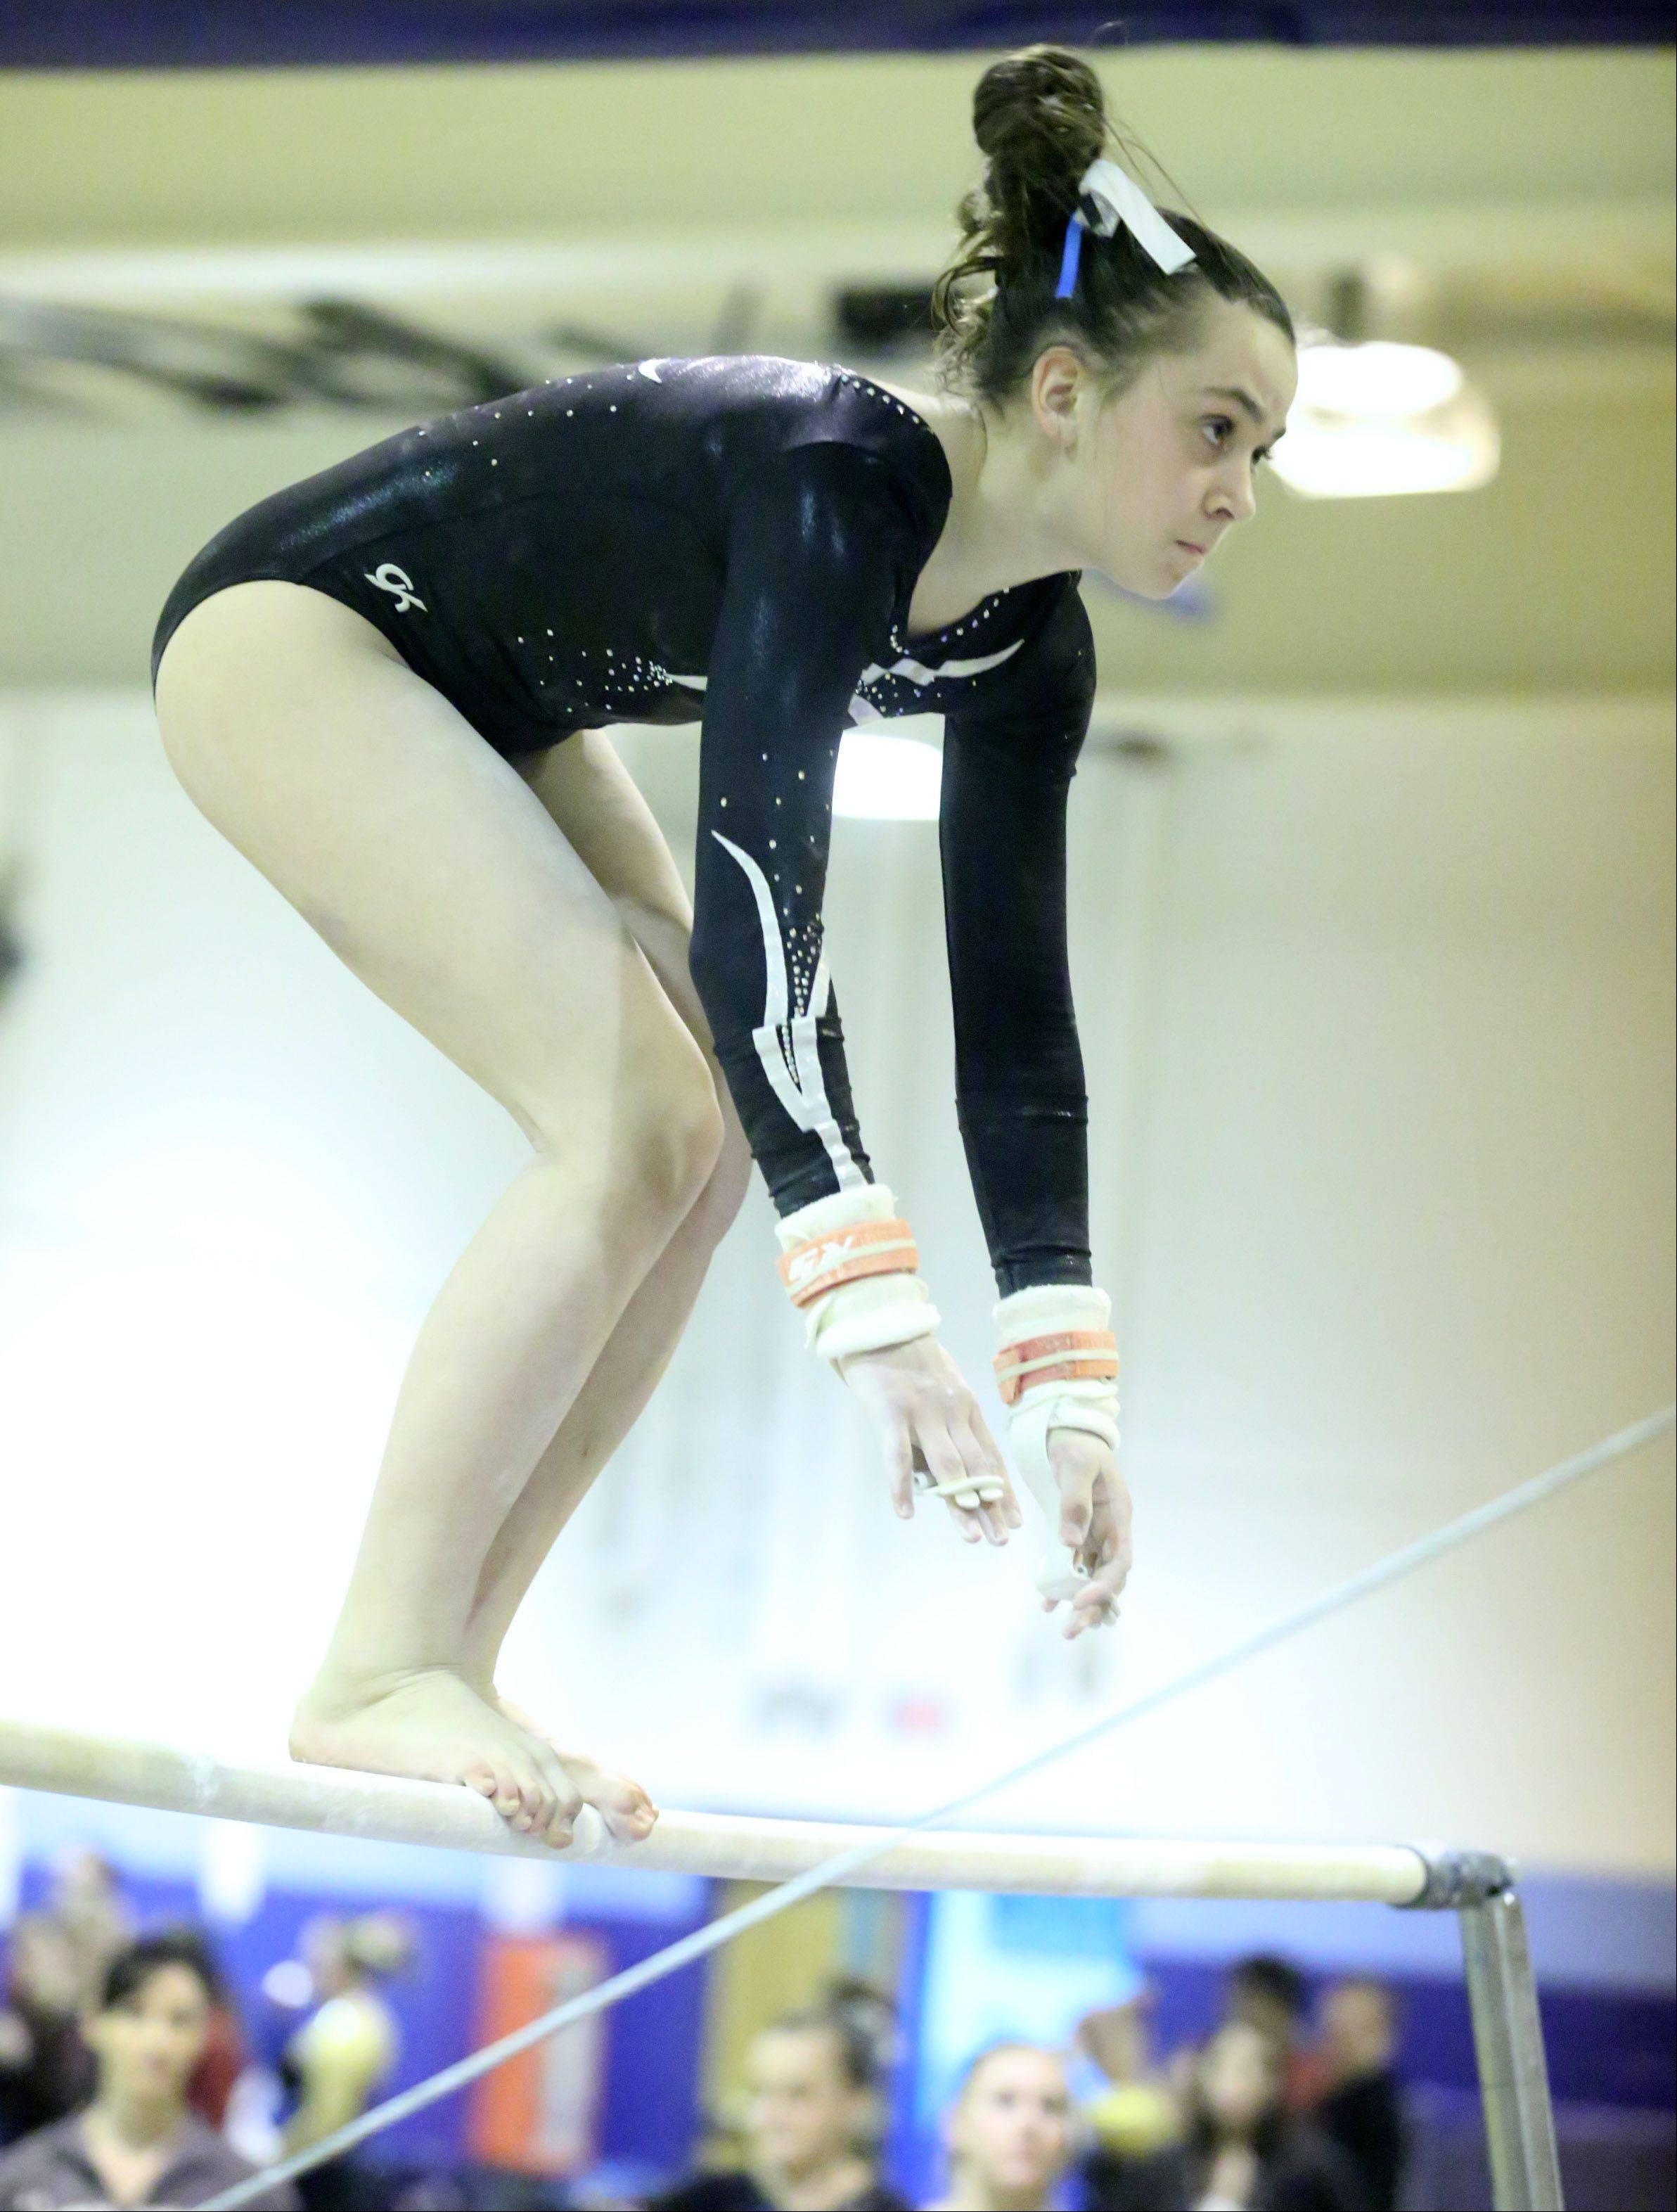 Prospect's Megan Donner competes on the uneven bars at a girls gymnastics invitational at Prospect on Saturday.